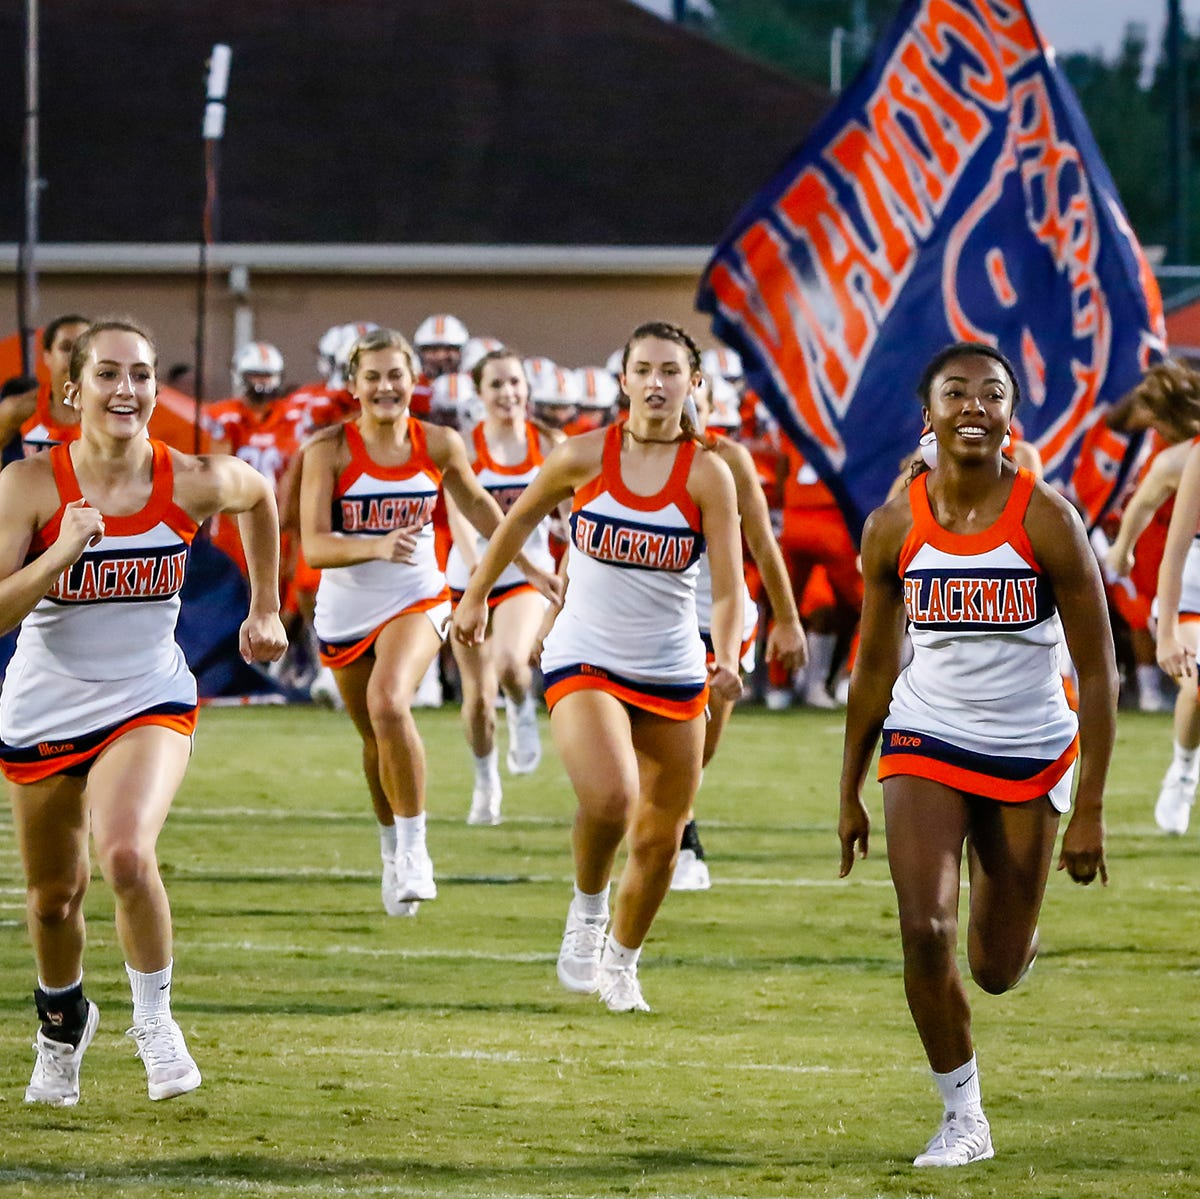 Oakland vs. Blackman football: What you need to know